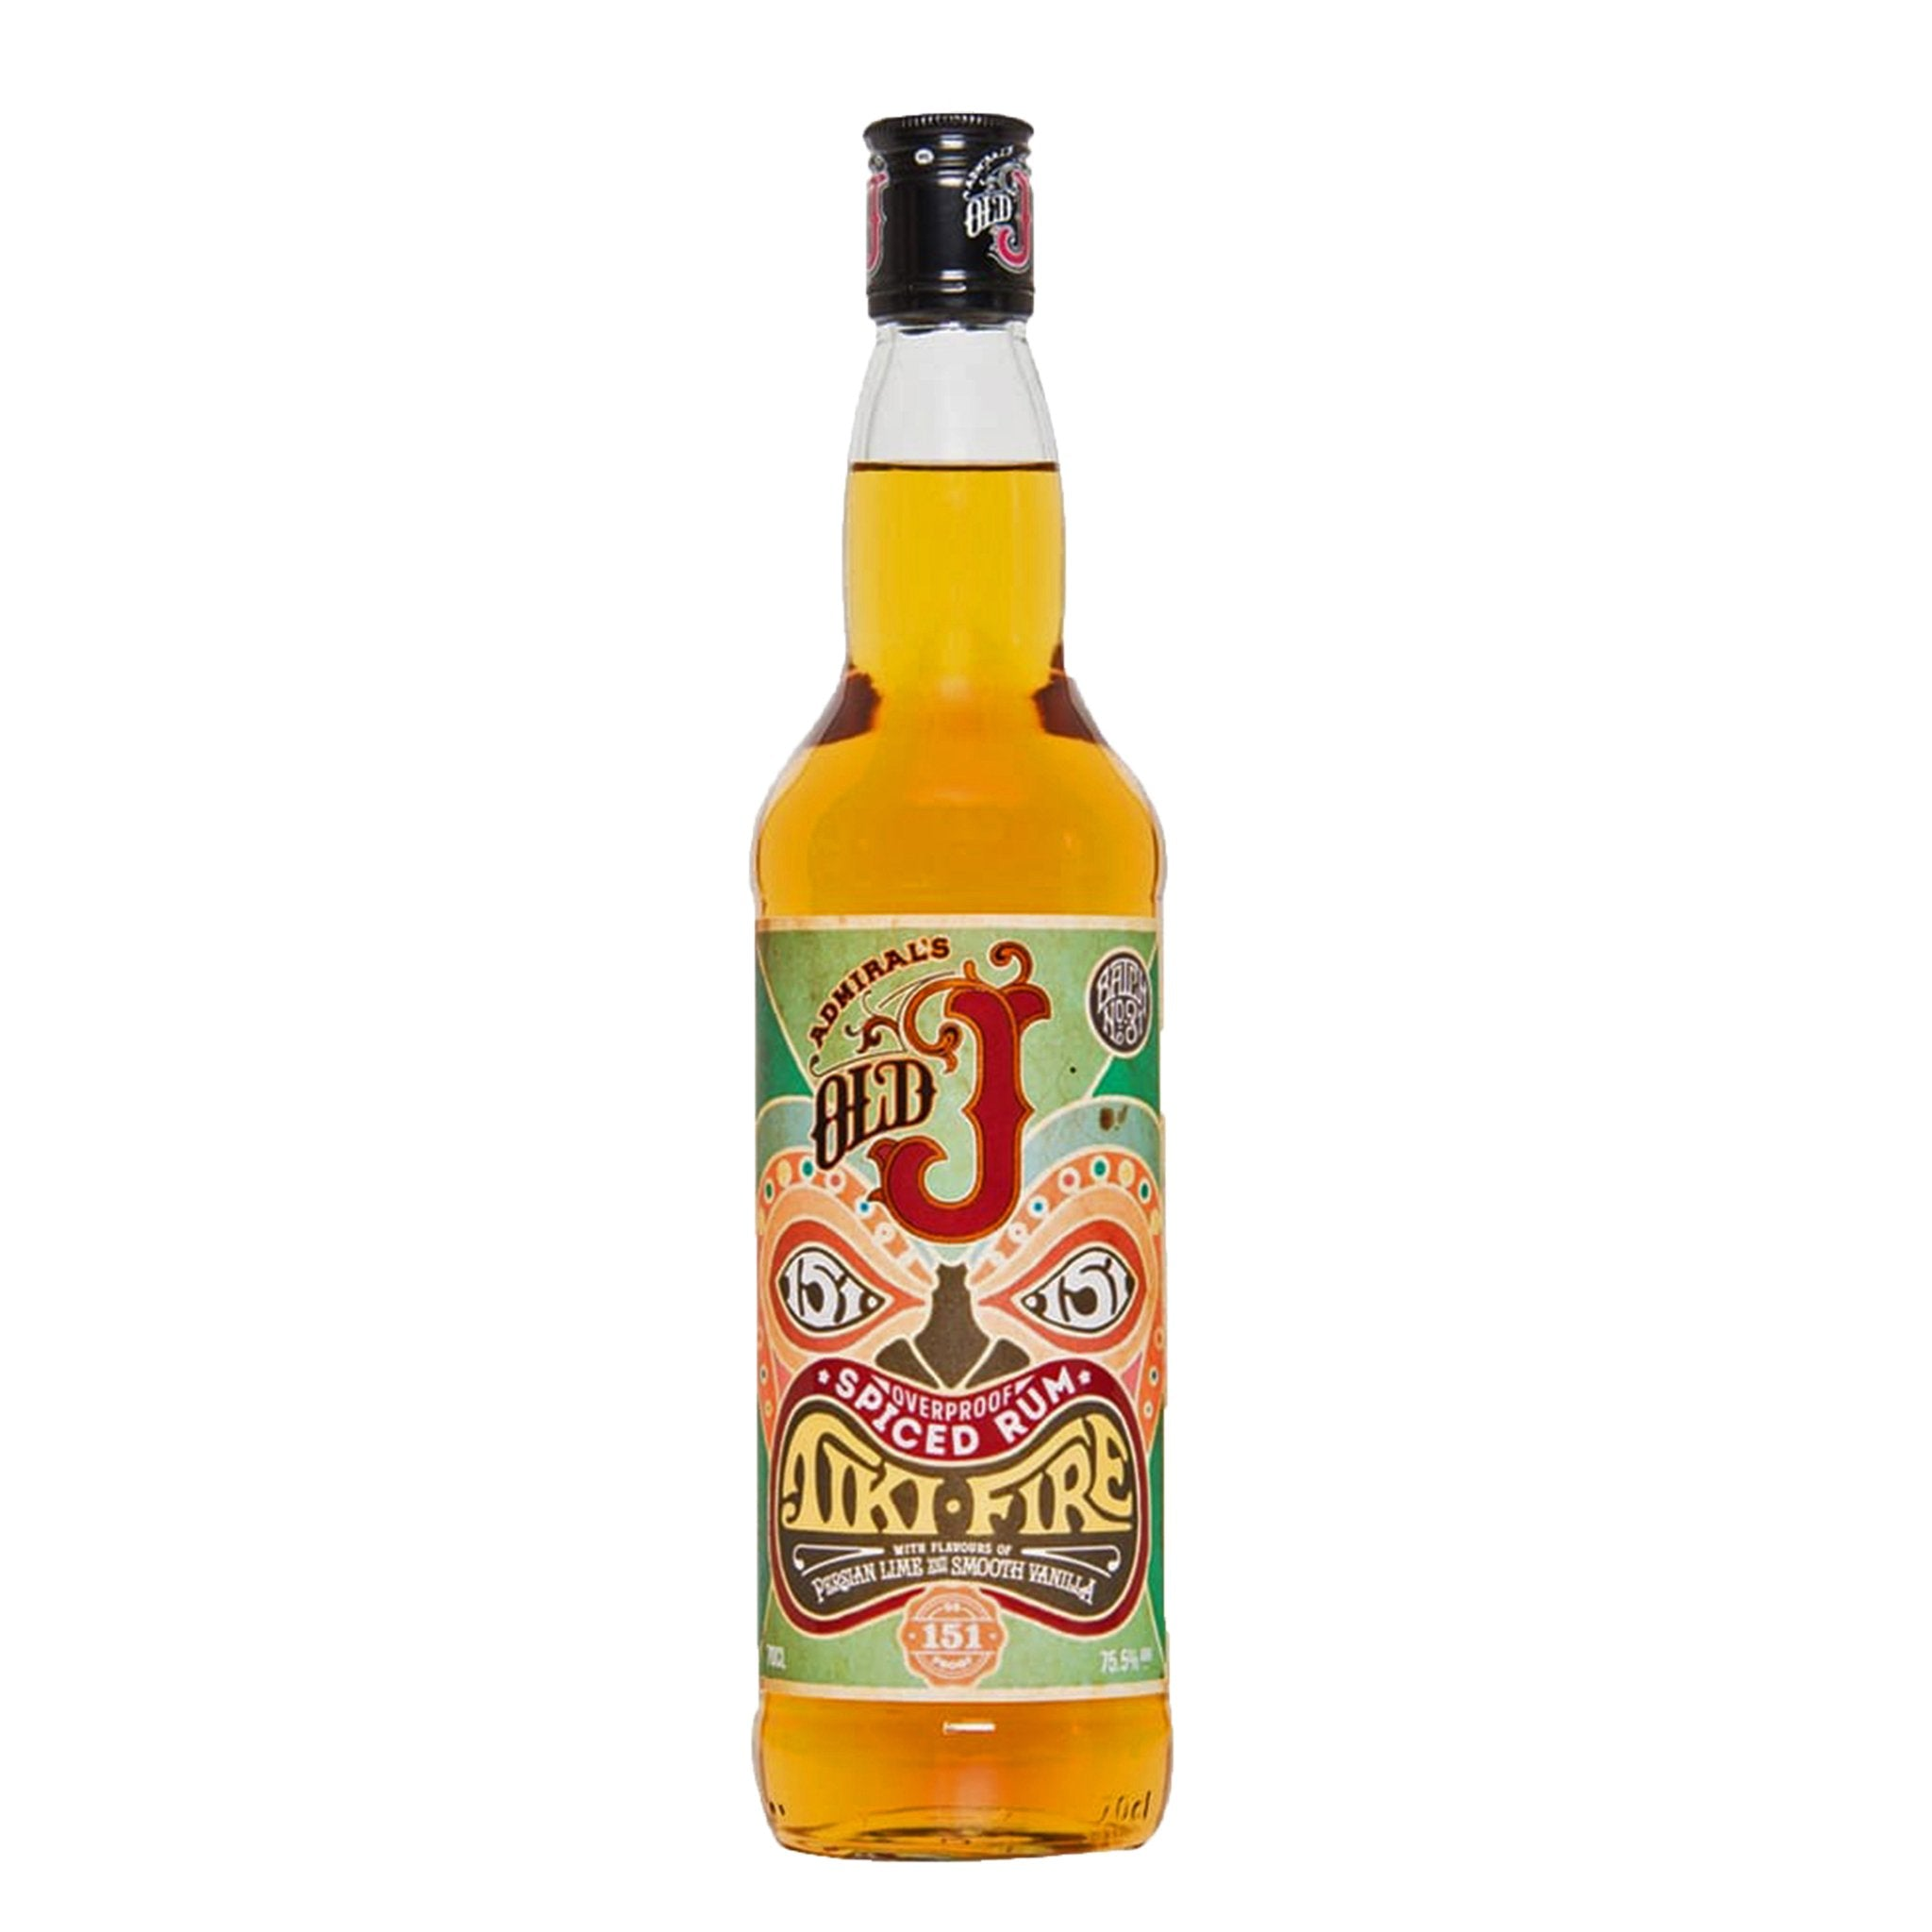 Old J Tiki Fire Spiced Rum, Rum by Drinks Shop